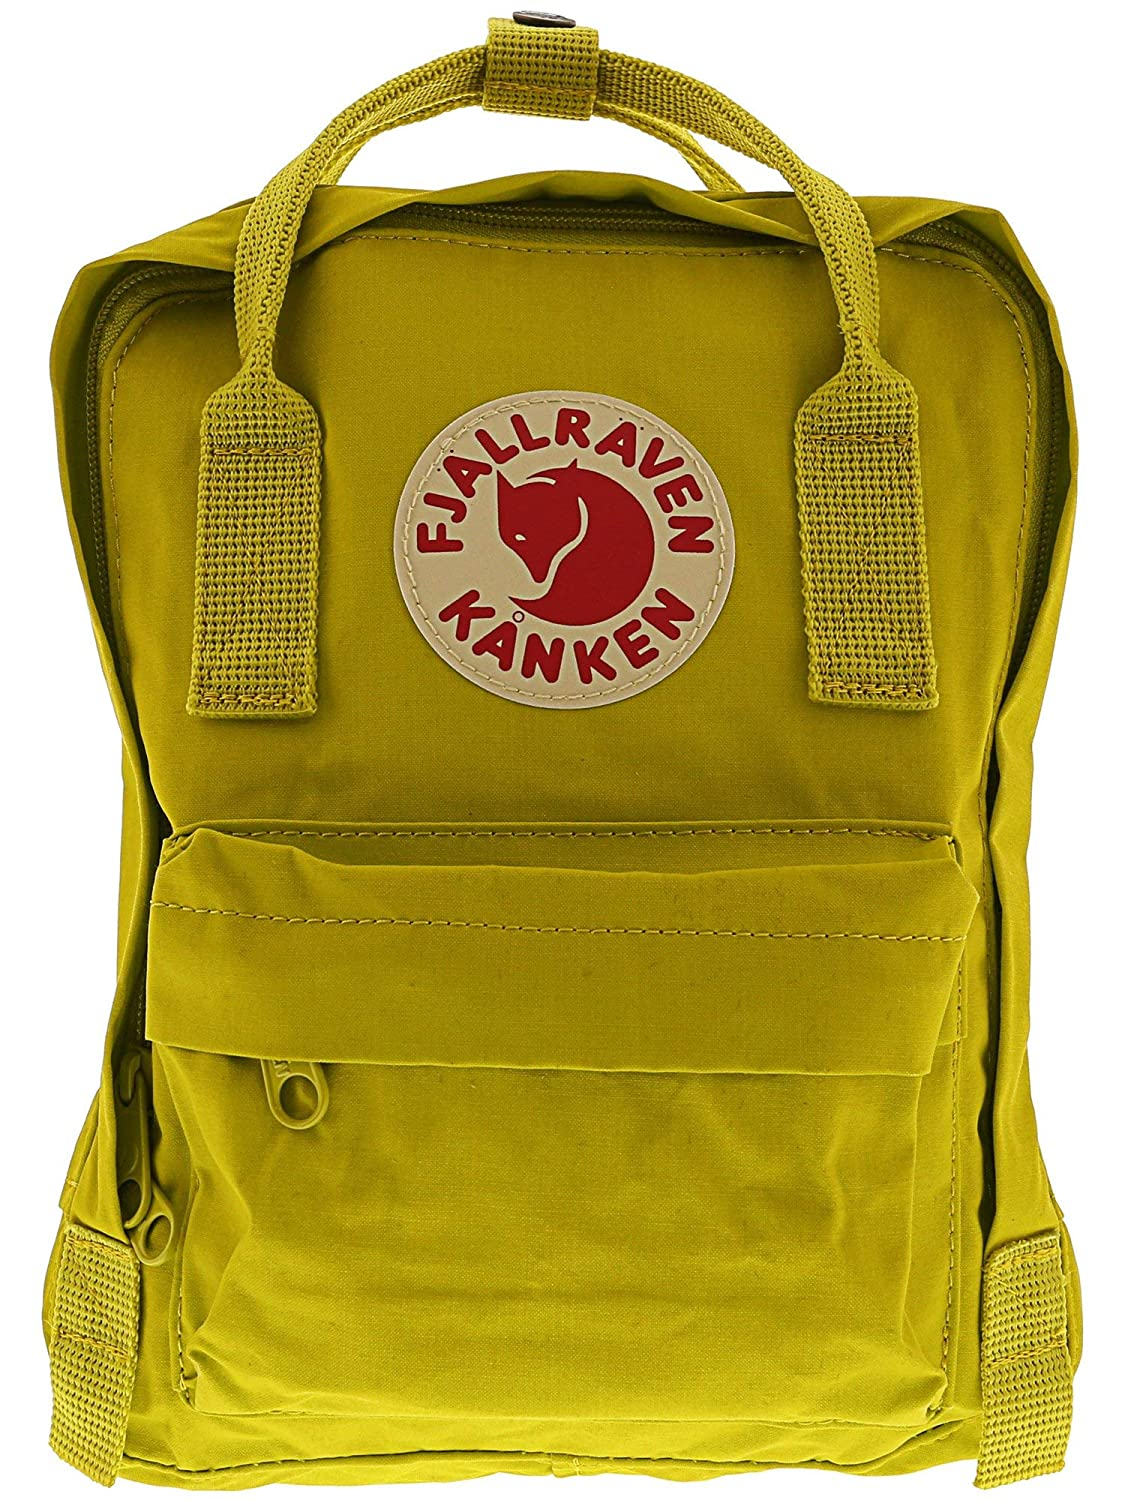 Fjallraven Kanken Mini Daypack, Forest Green/Ox Red F23561